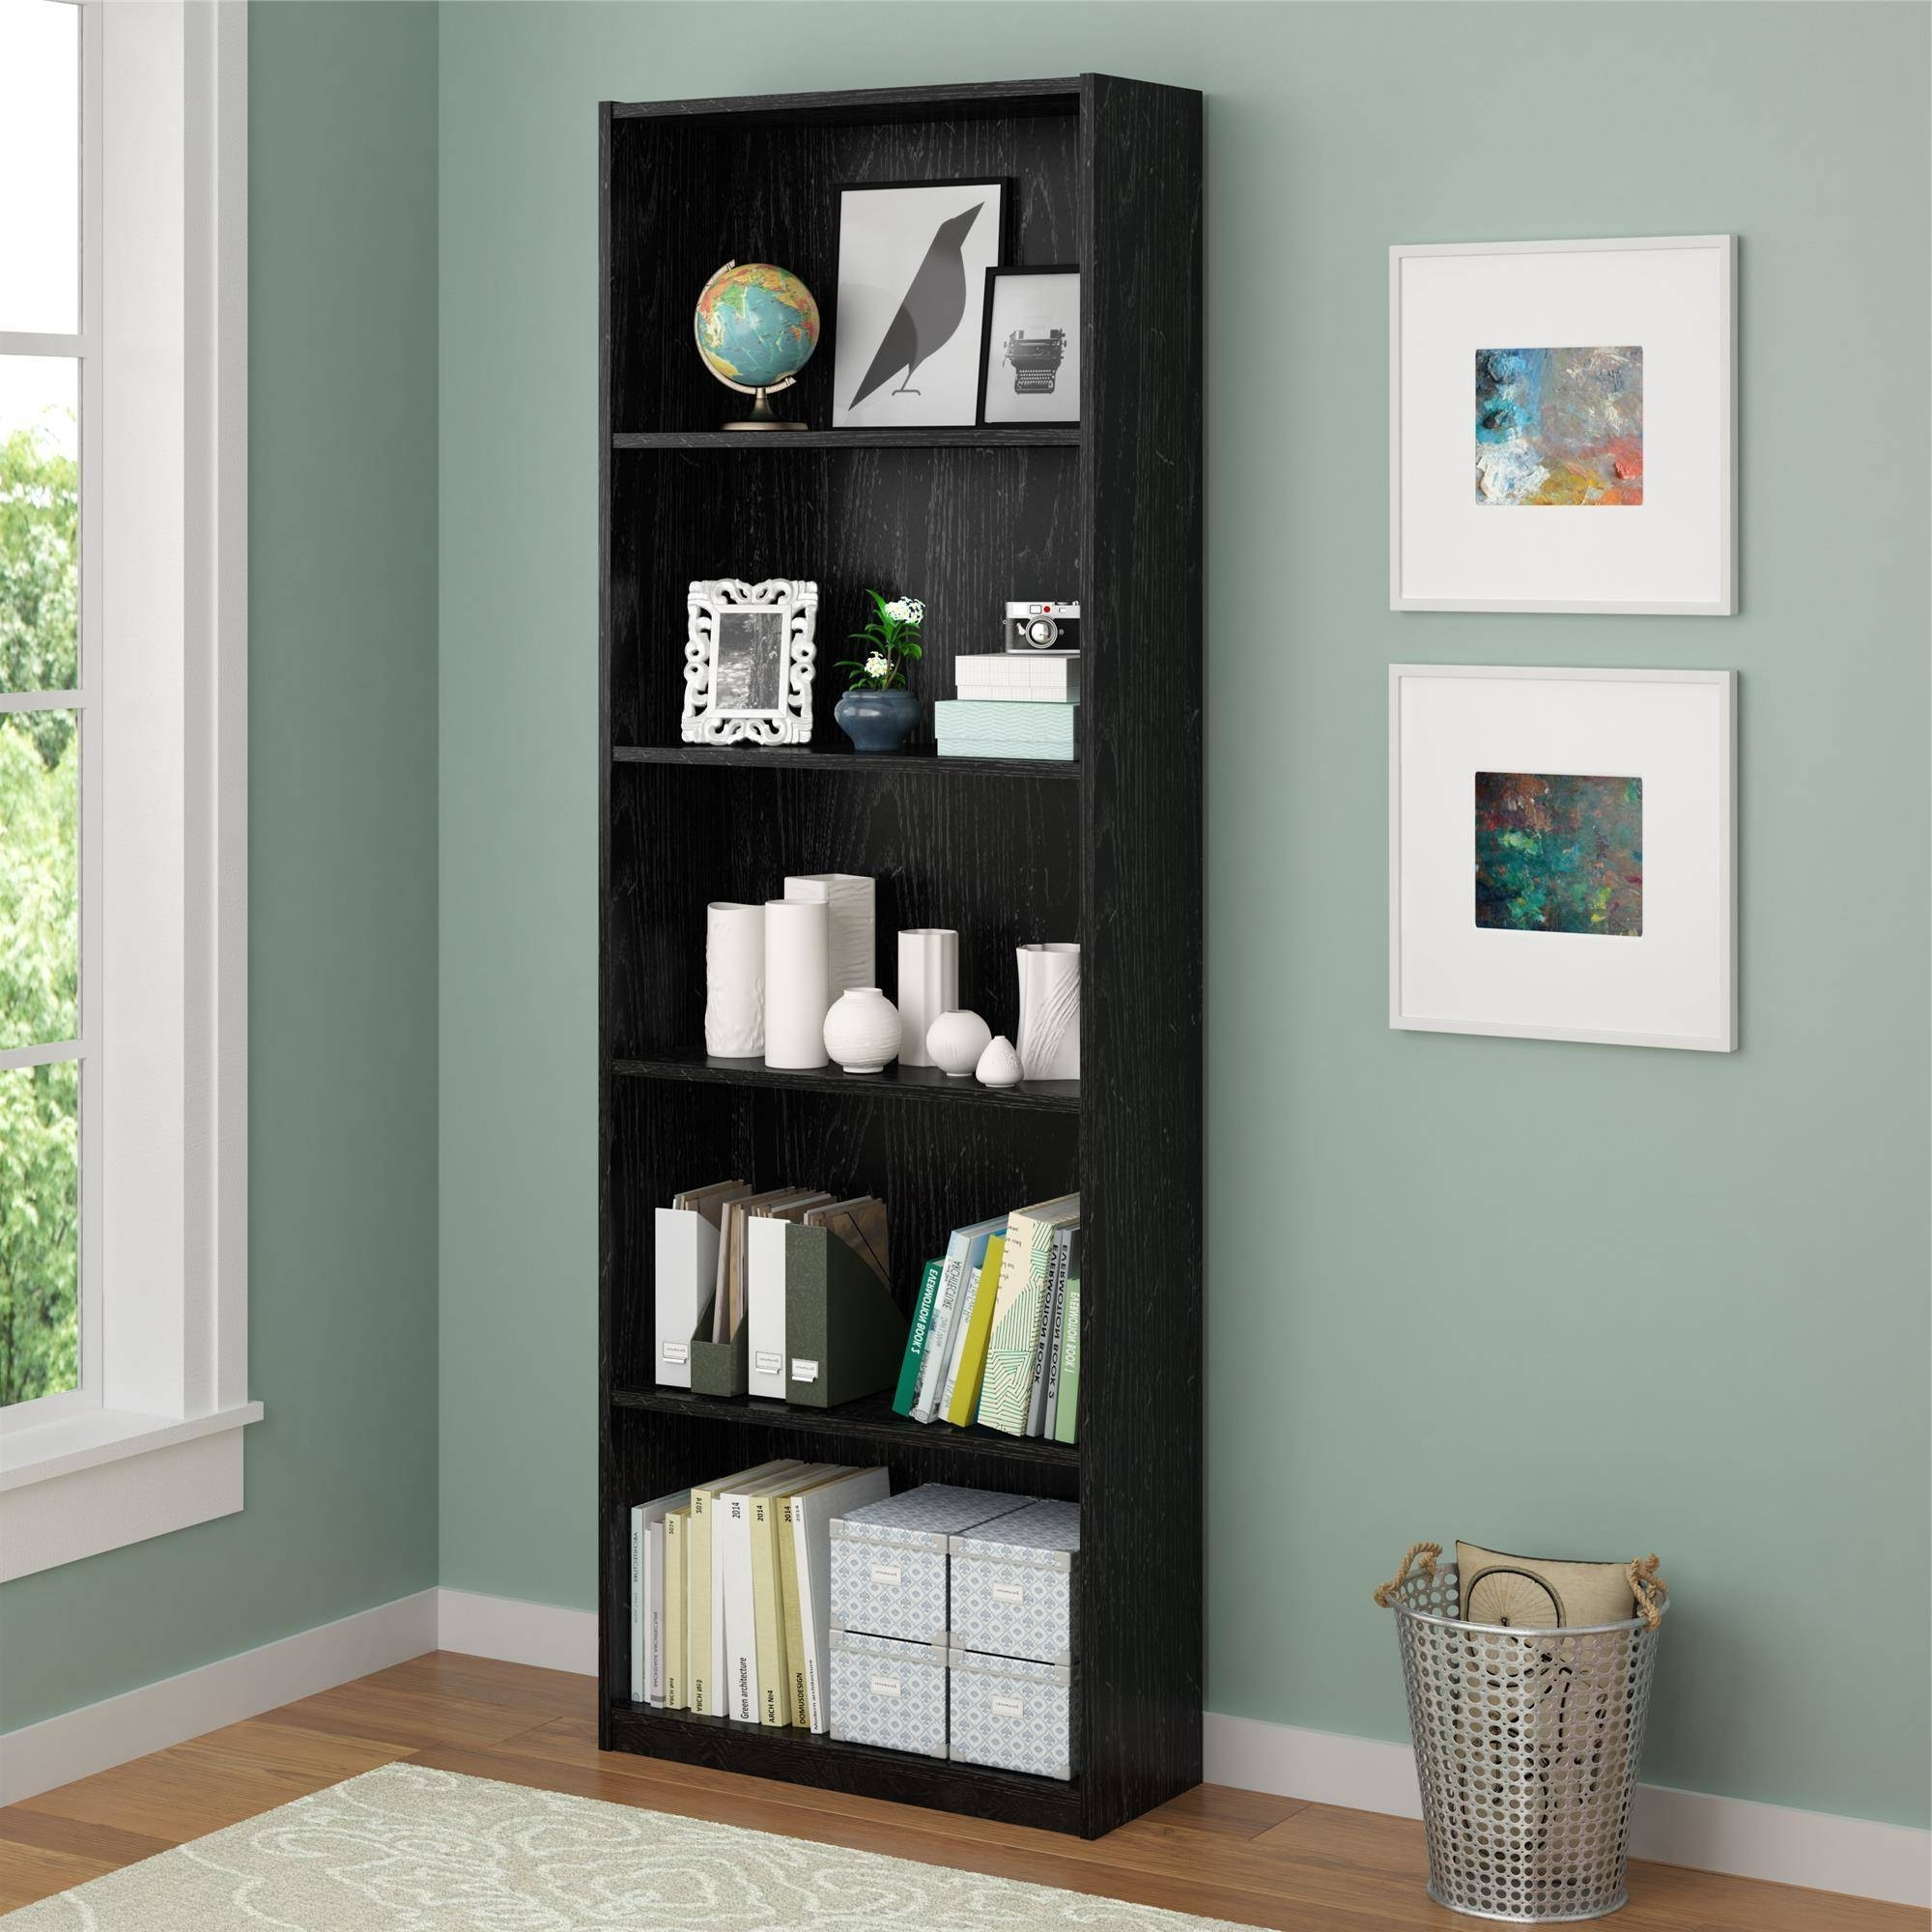 2018 Ameriwood 5 Shelf Bookcases, Set Of 2 (Mix And Match) – Walmart For Walmart 3 Shelf Bookcases (View 1 of 15)